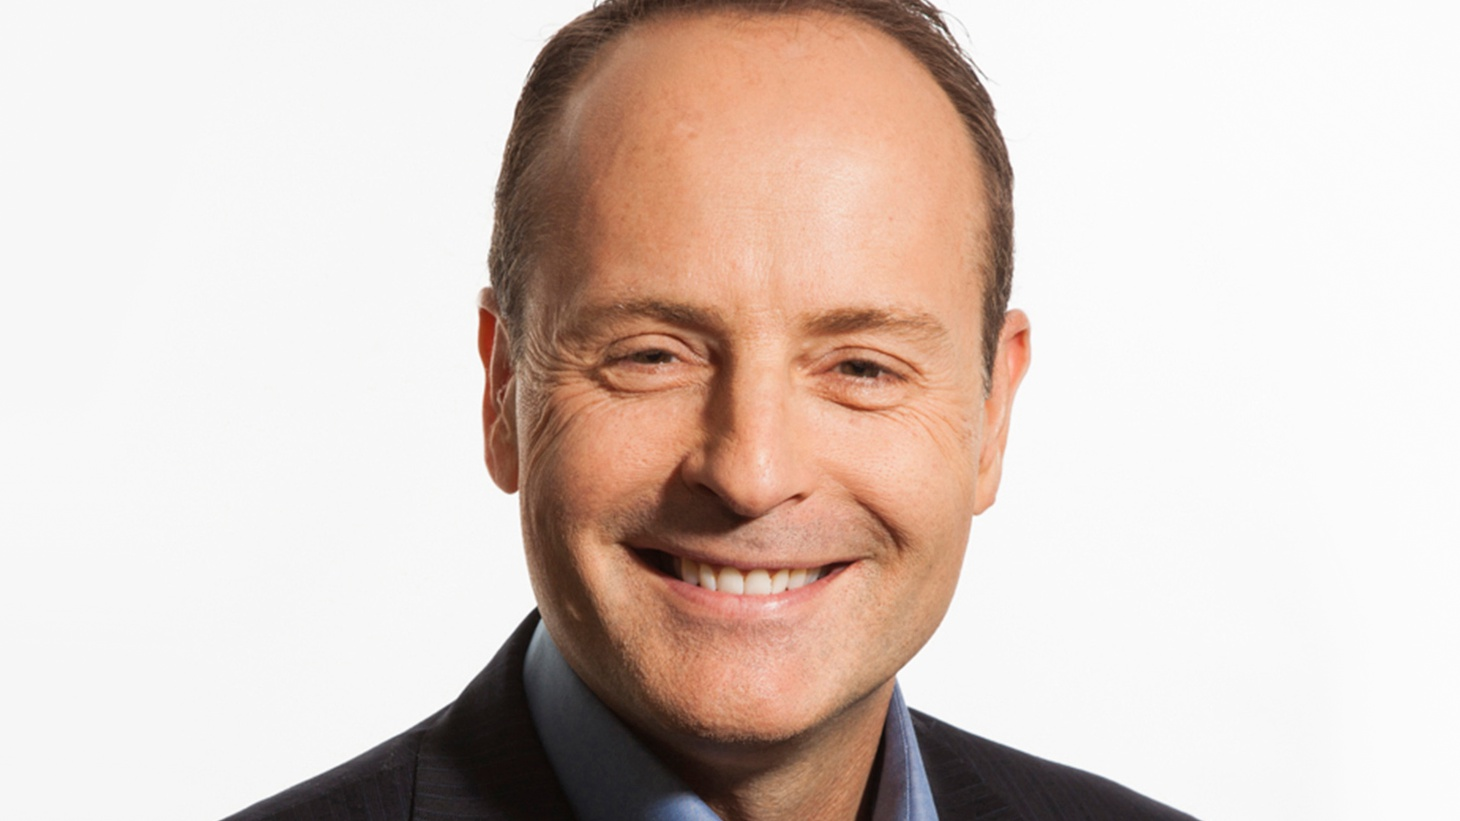 It may seem strange for the head of a cable network that's gone from two to 20 shows in the last decade to say there's officially too much TV, but that's exactly what FX's John Landgraf declared at this summer's TCA gathering. He breaks down his thinking for us.